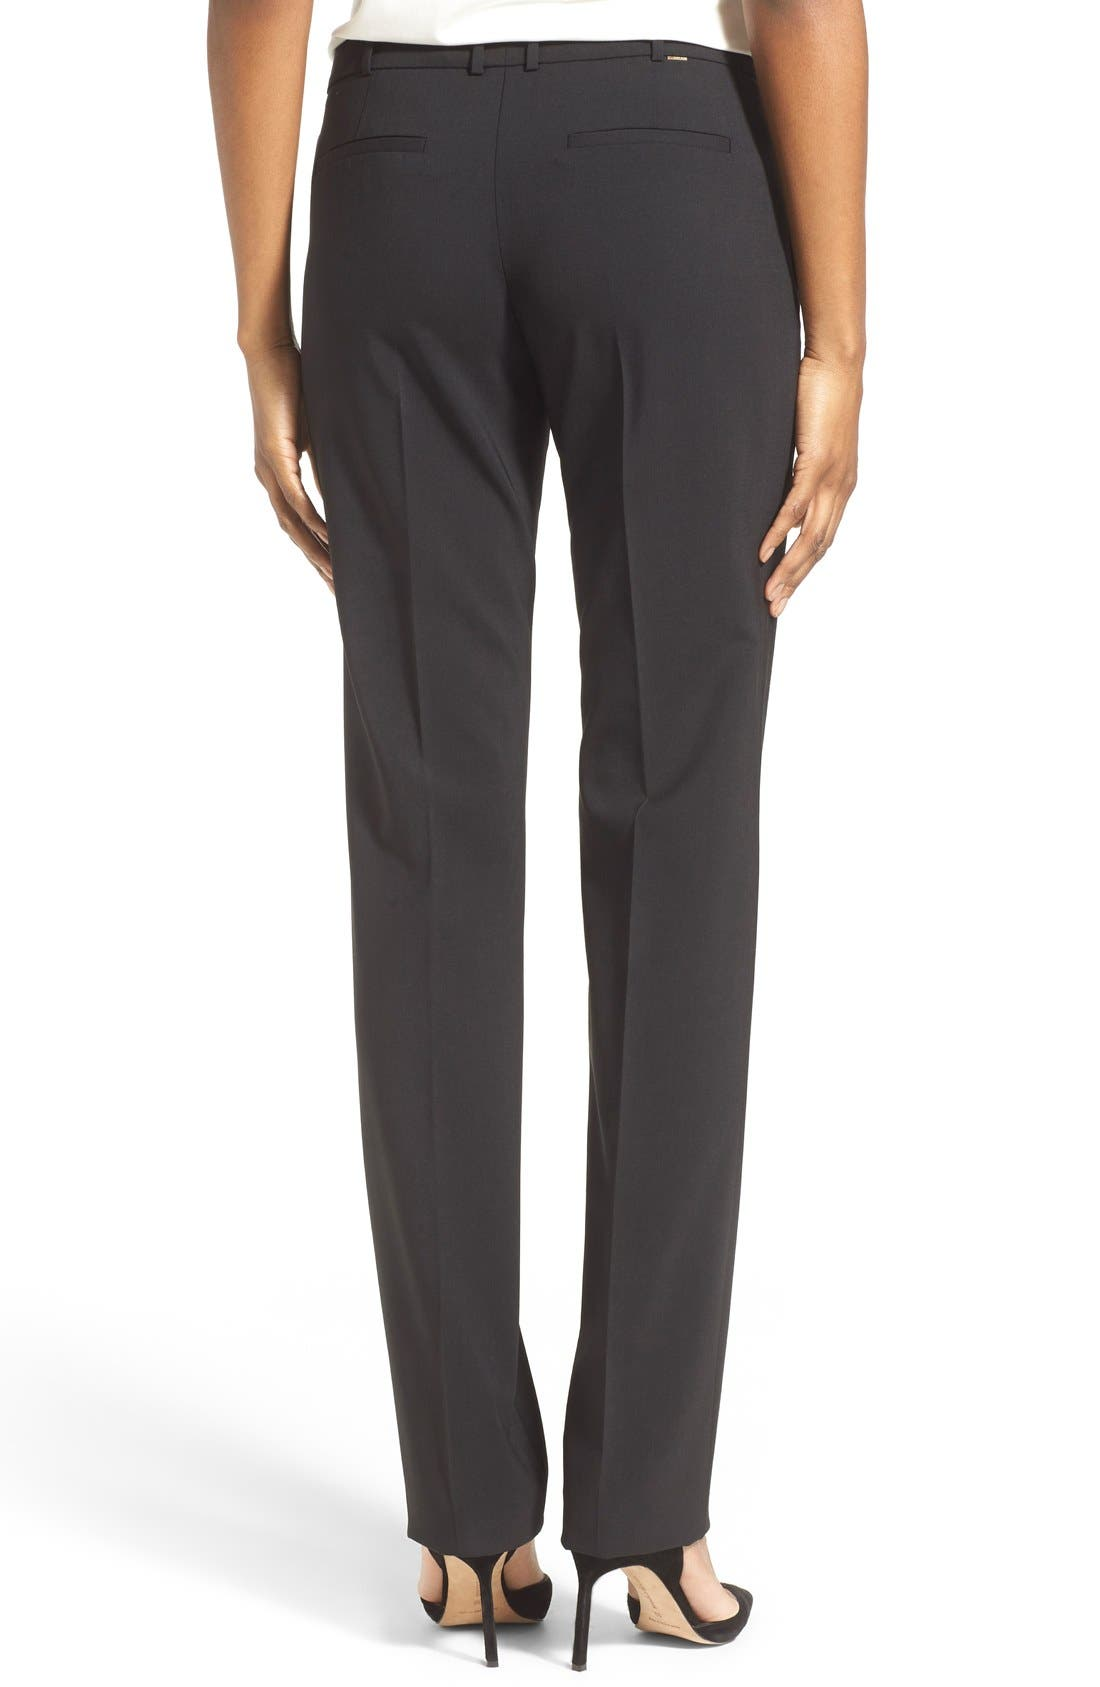 Tamea Tropical Stretch Wool Trousers,                             Alternate thumbnail 10, color,                             BLACK